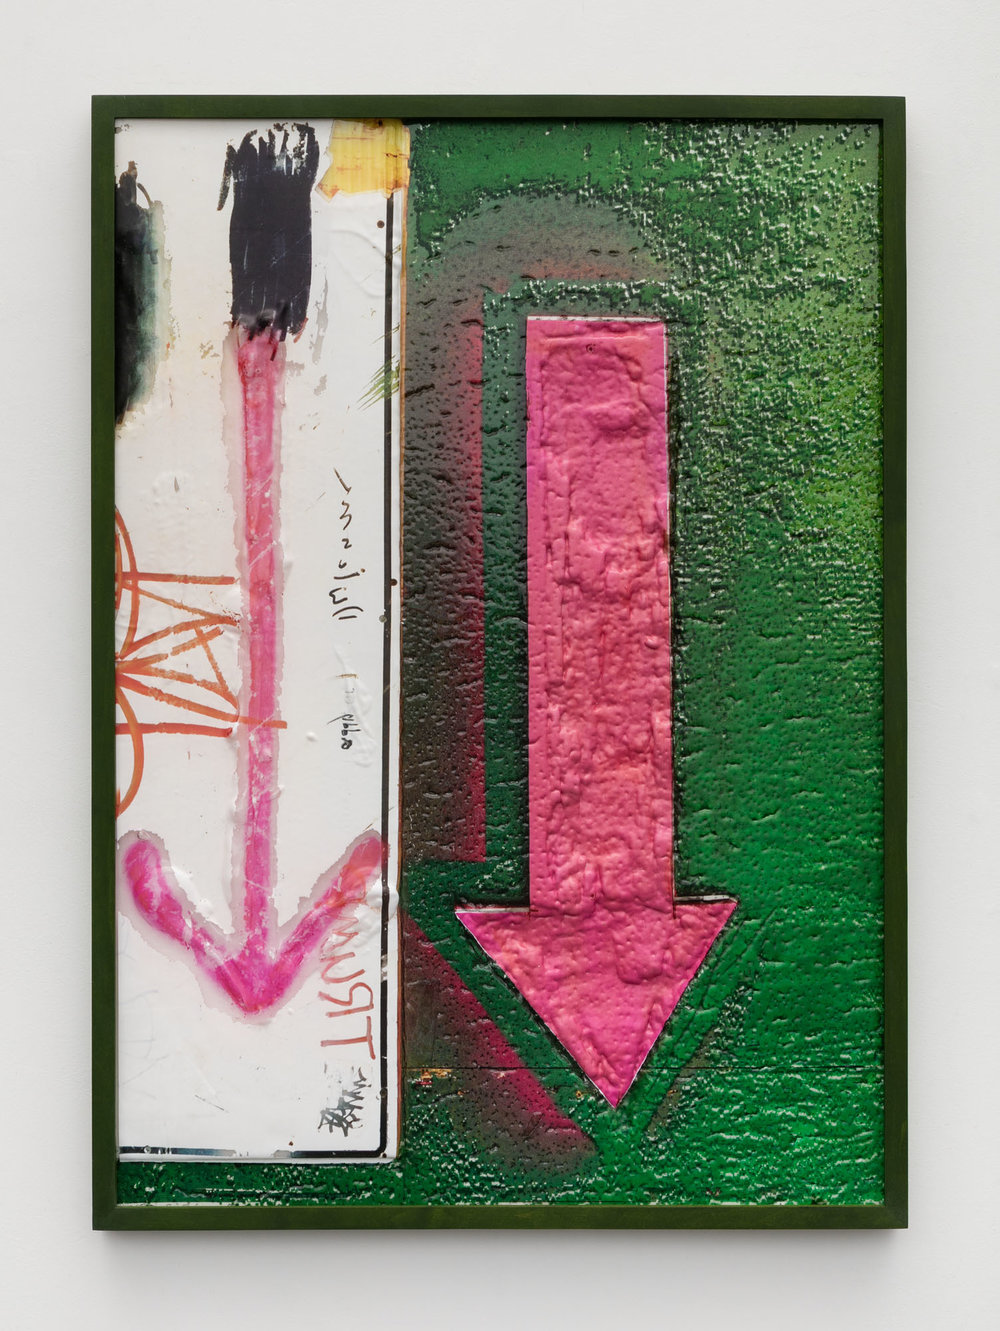 Ethan Greenbaum   Hoarding , 2018  Direct to substrate double sided print, acrylic on vacuumed formed PETG  28 x 20 inches